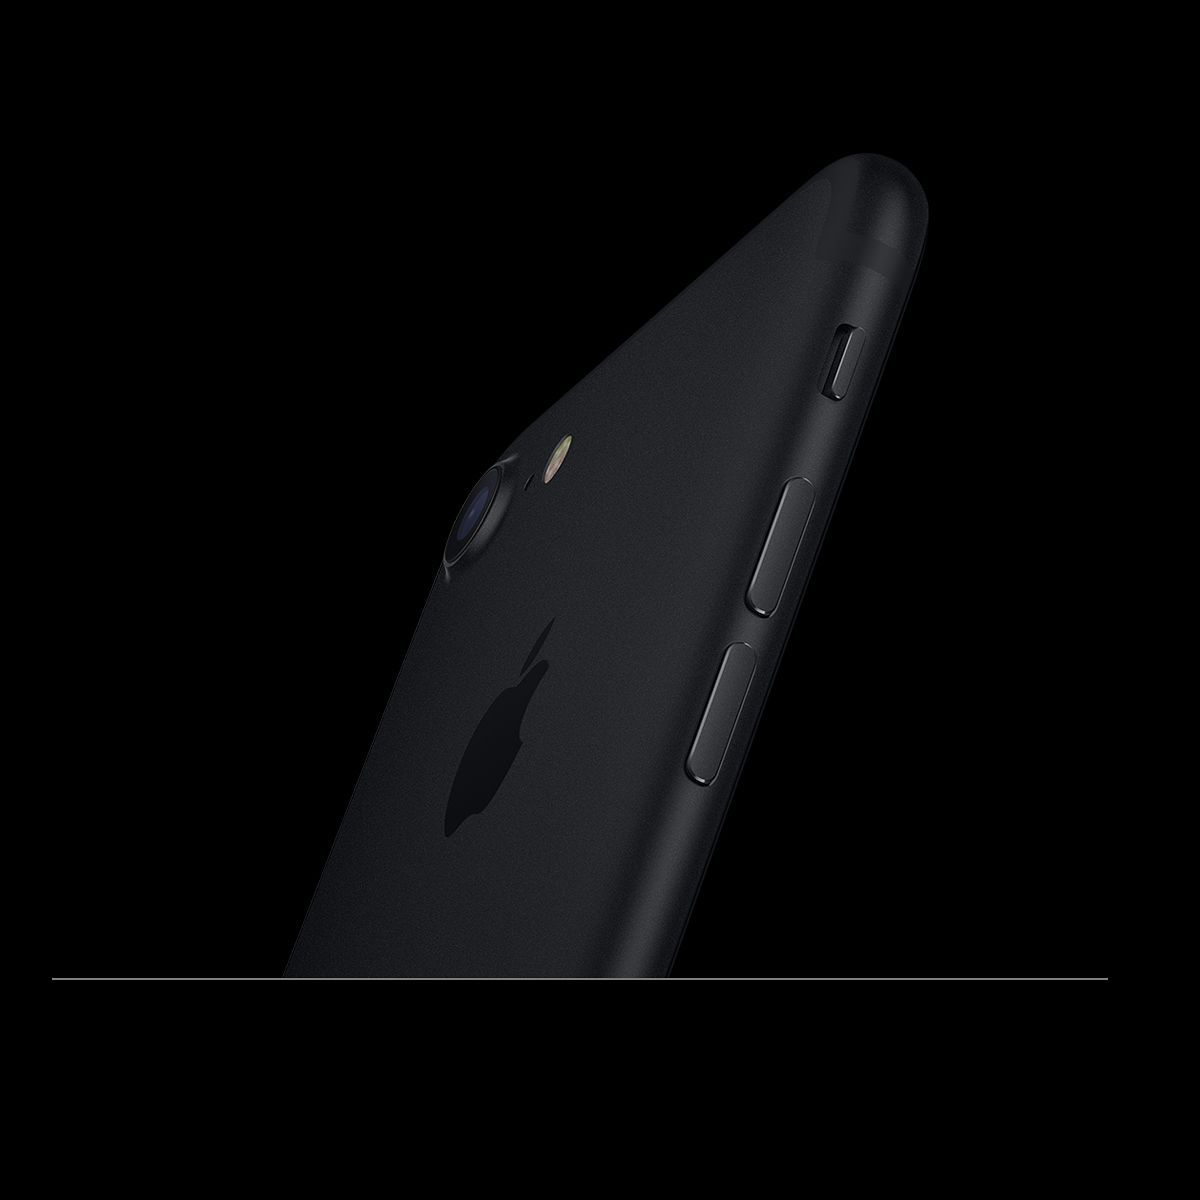 Buy online or visit an apple store and trade up to iphone